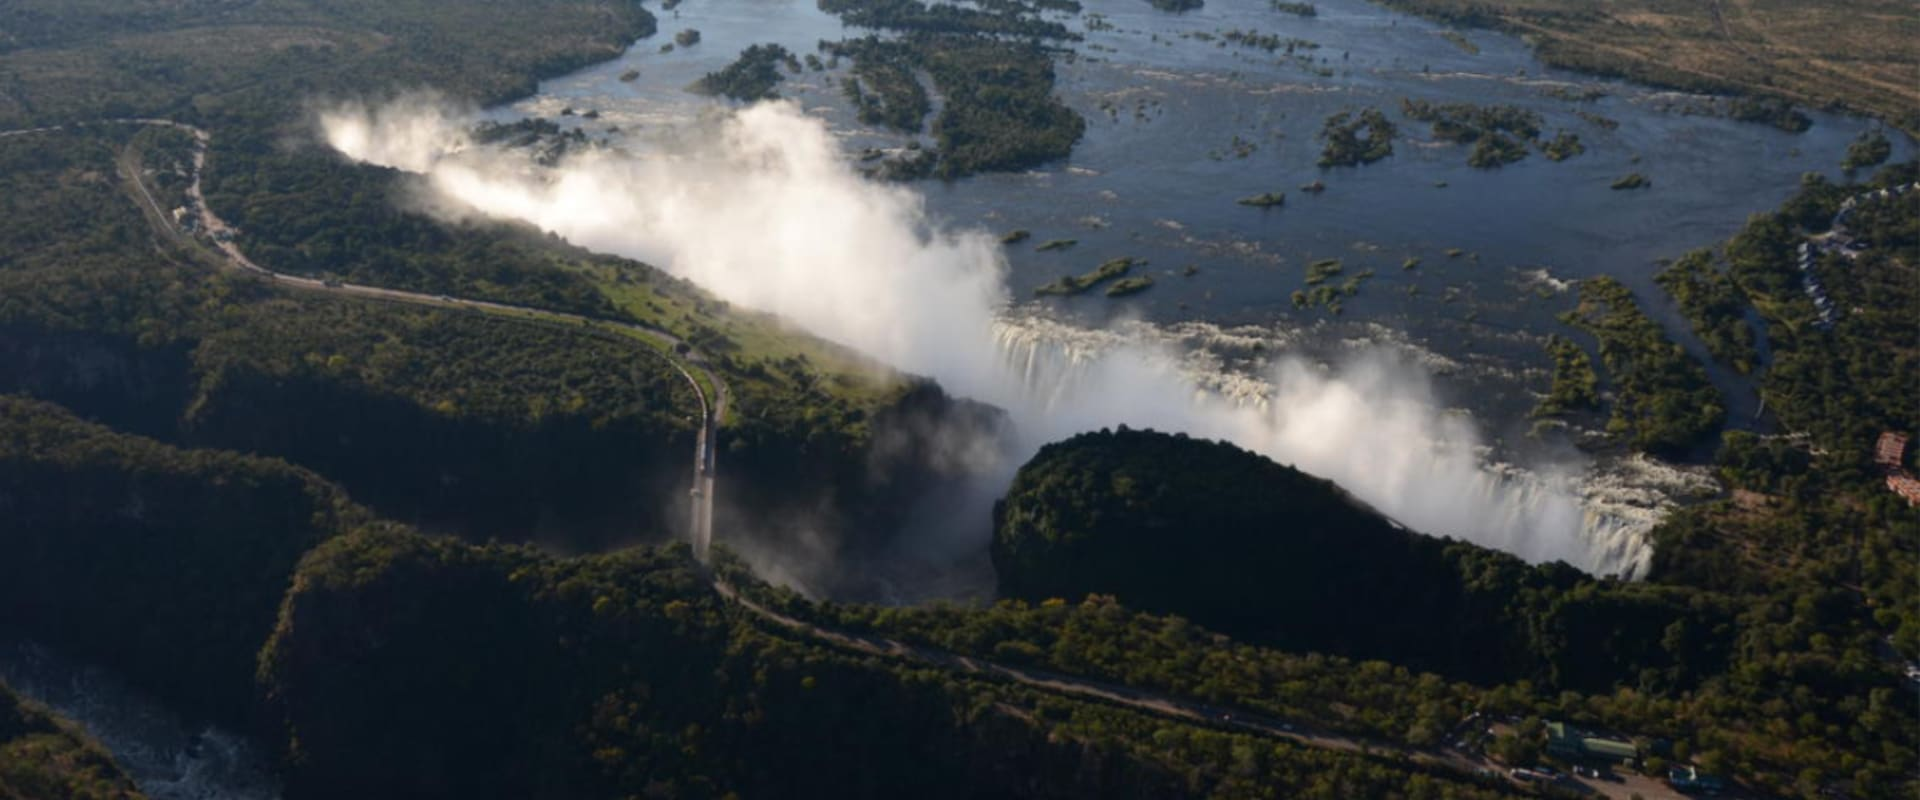 Stand in awe at the thunderous Victoria Falls